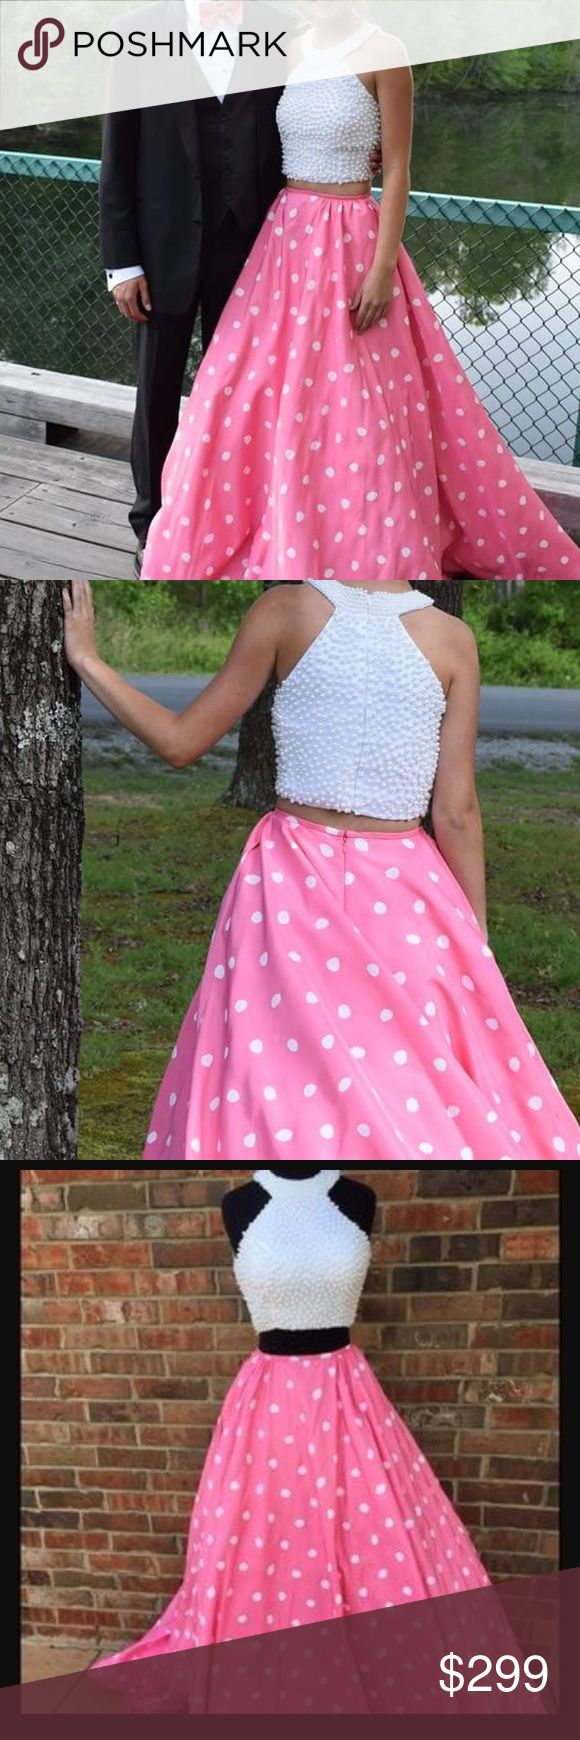 Sherri Hill 2 piece prom dress Sherri Hill pearl and Polka dot prom dress size 4 but altered to fit a 2. The dress has not been cut during alterations. Alterations can be taken out. This  dress is from the Sadie Robertson collection and worn once. It does have some wear on underside of hem but not visable when on. Excellent condition- only worn once Paid $700 2 piece prom gown. Sherri Hill Dresses Prom